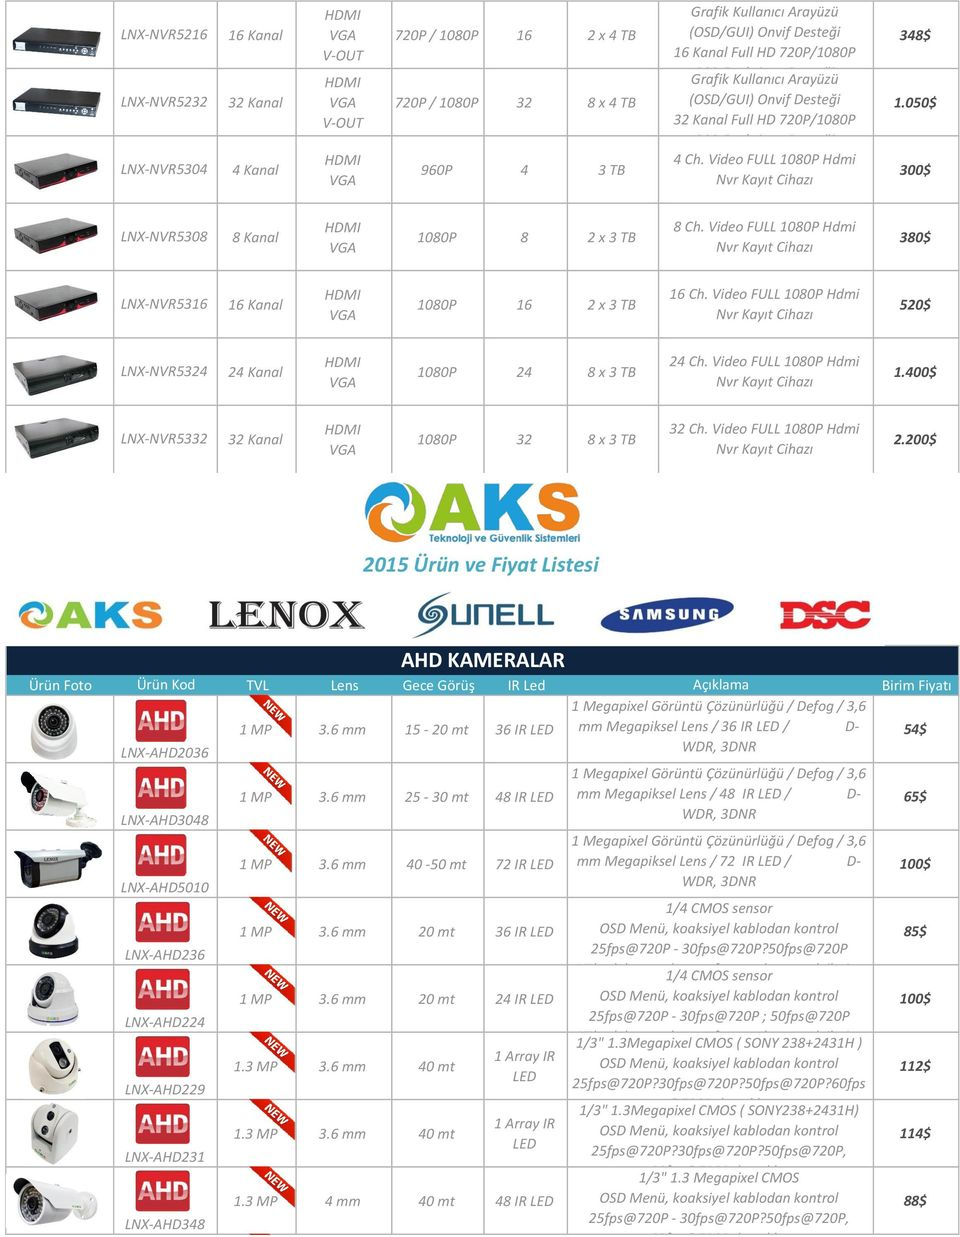 Video FULL 1080P Hdmi 1080P 8 2 x 3 TB 380$ Nvr Cihazı LNX-NVR5316 16 Ch. Video FULL 1080P Hdmi 1080P 16 2 x 3 TB 520$ Nvr Cihazı LNX-NVR5324 2 24 Ch. Video FULL 1080P Hdmi 1080P 24 8 x 3 TB 1.